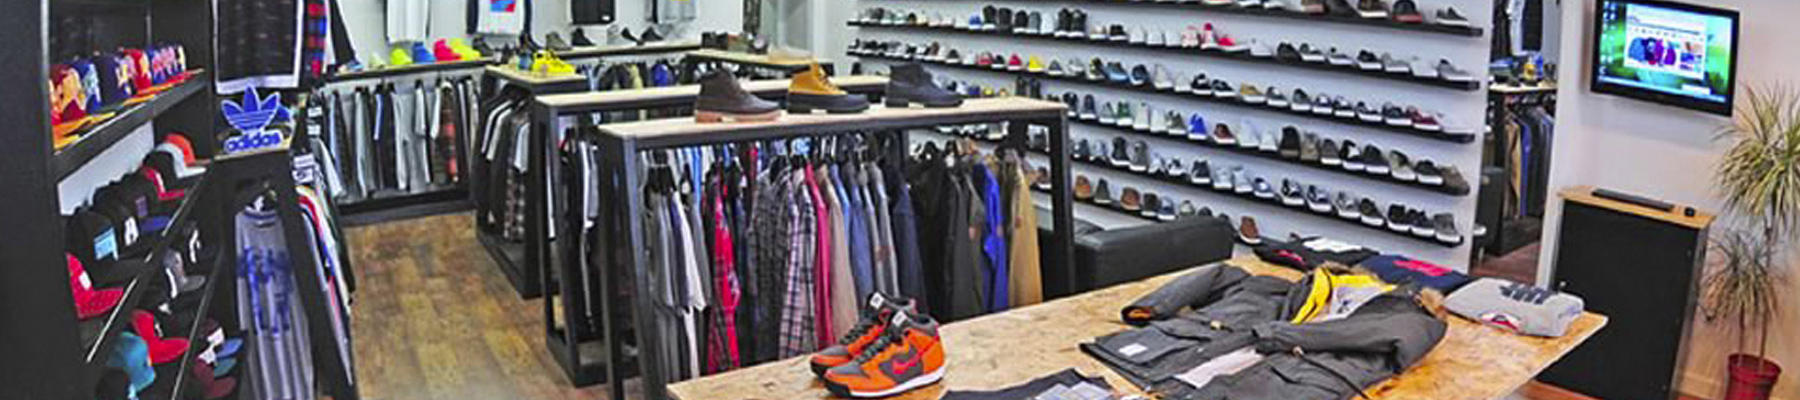 the best attitude 9af51 67e18 Urban Industry Clothing Retailer Success Story